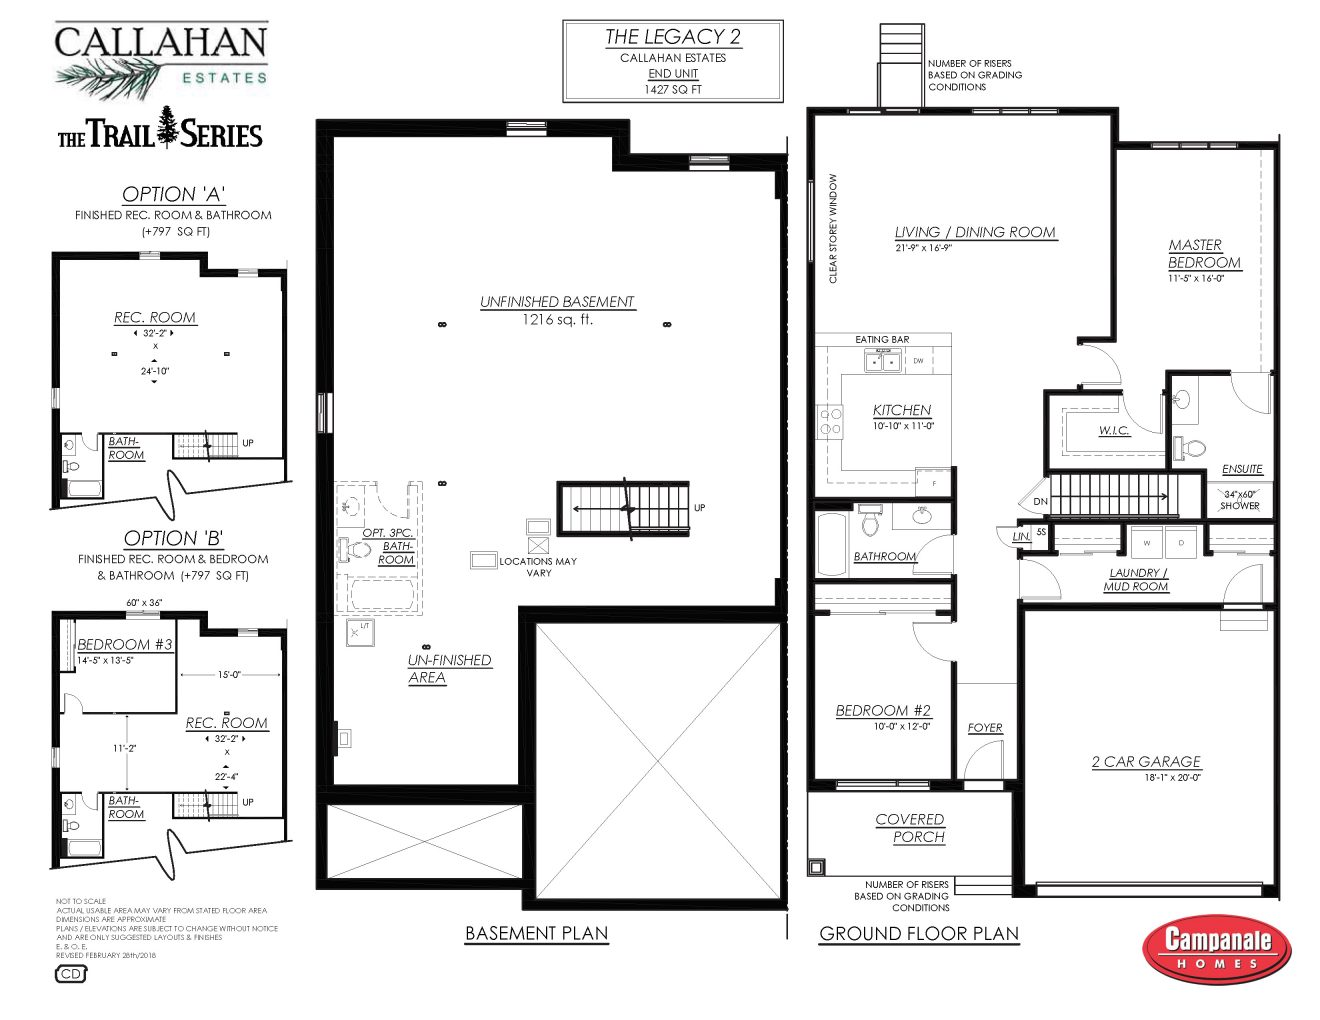 Arnprior, attached Bungalows, townhomes, New, Affordable, Callahan Estates, Award-Winning Builder, Short Drive from Kanata, Campanale Homes